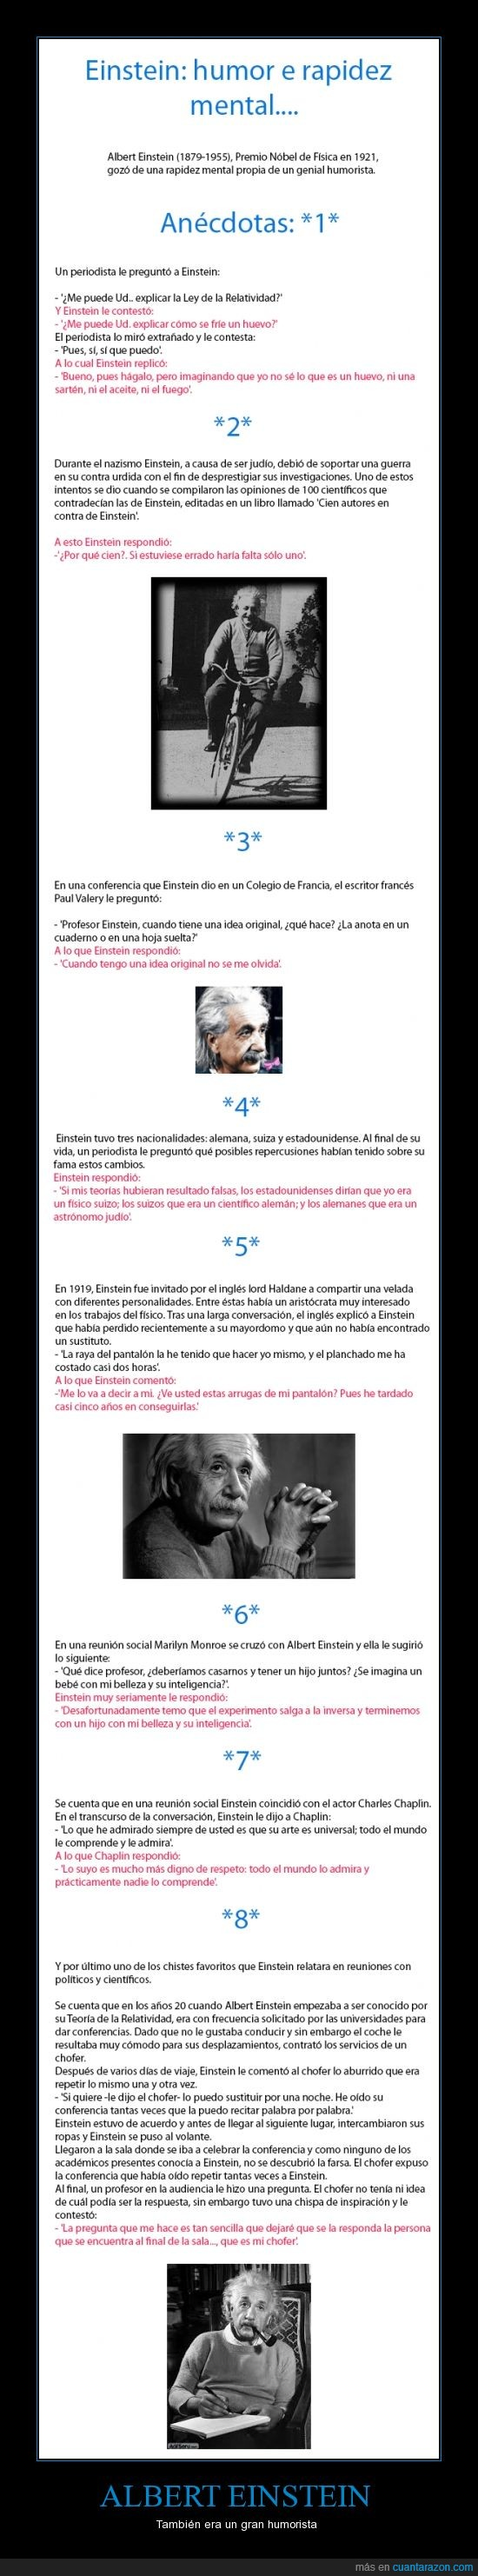 albert einstein,chaplin,chofer,humor,inteligencia,marilyn monroe,premio novel,rapidez